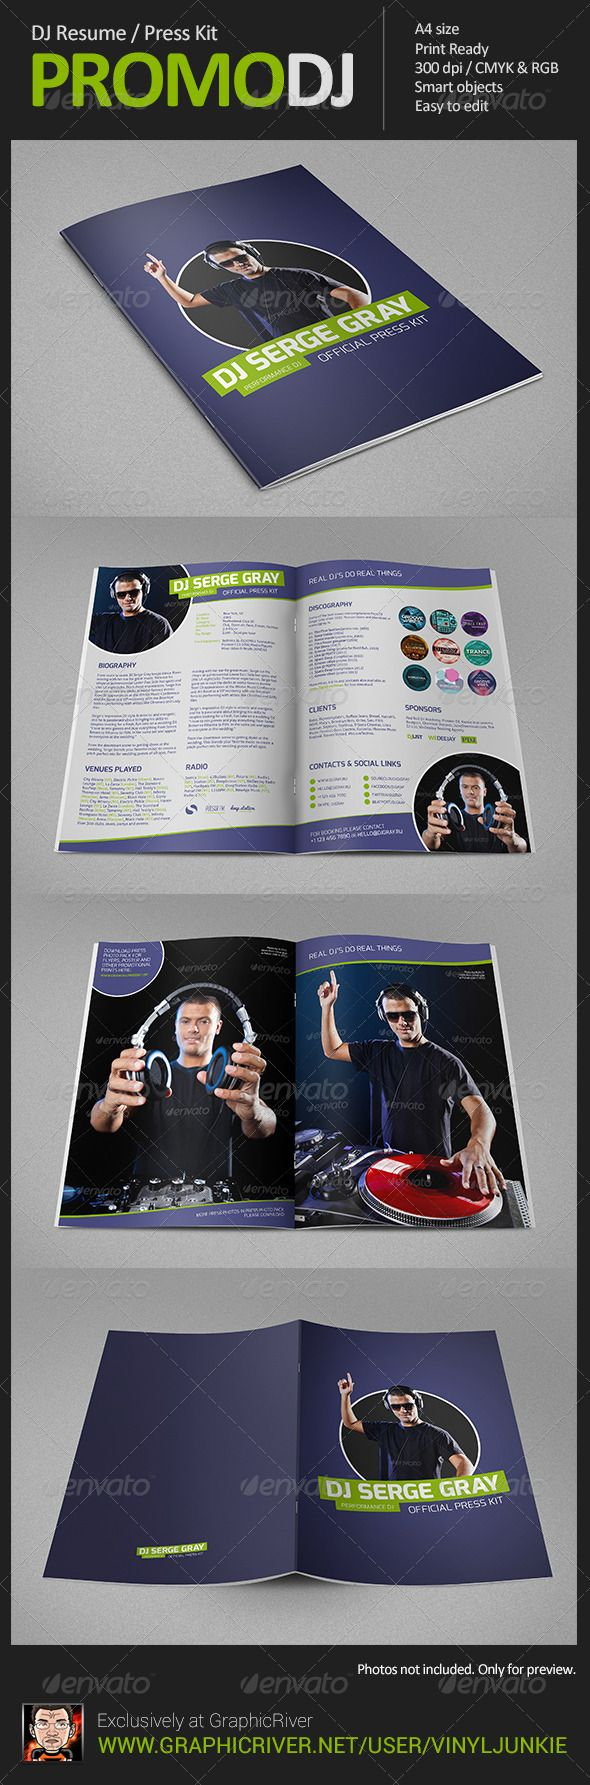 15 best images about dj press kit and dj resume templates